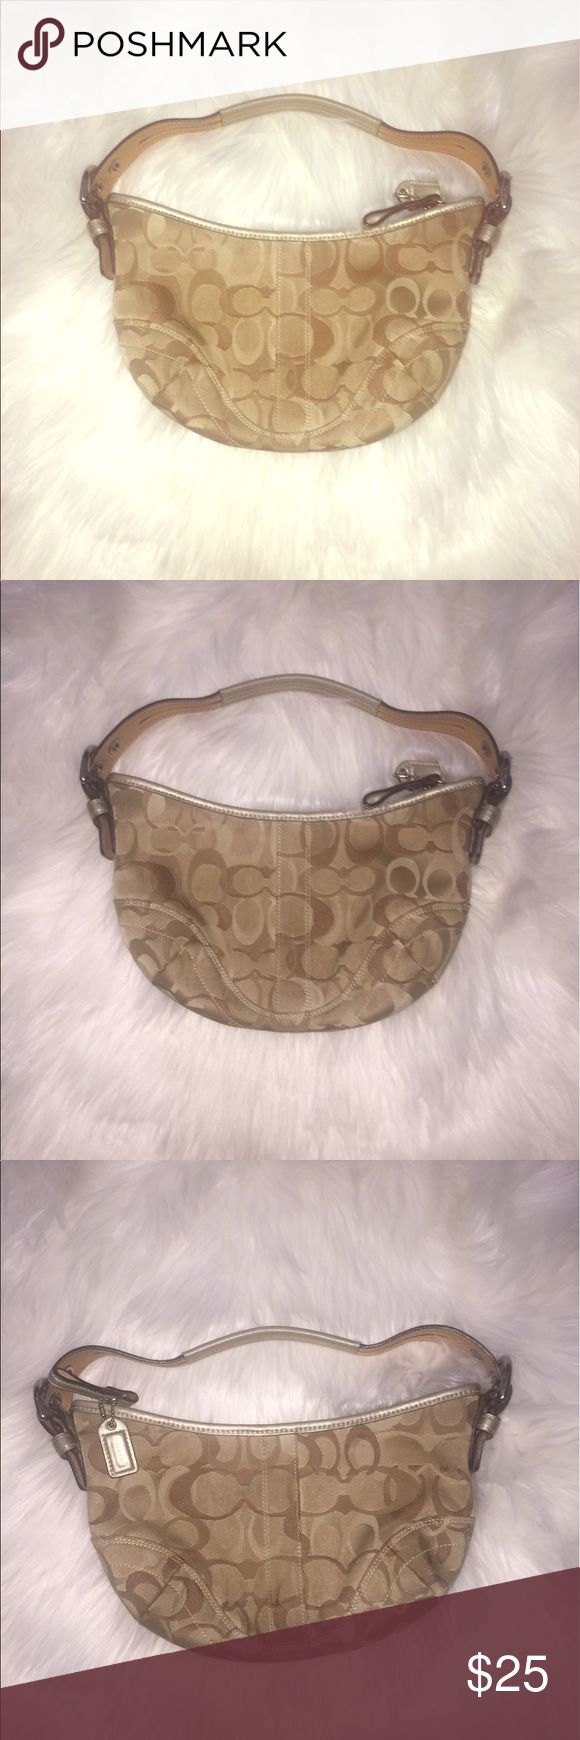 Coach Beige and Gold logo mini hobo shoulder bag Preowned in good condition. Only flaw to note is that there are light scratches on the silver tone metal hard ware and light blemish on upper right has corner ( not overly noticeable. Coach Bags Shoulder Bags